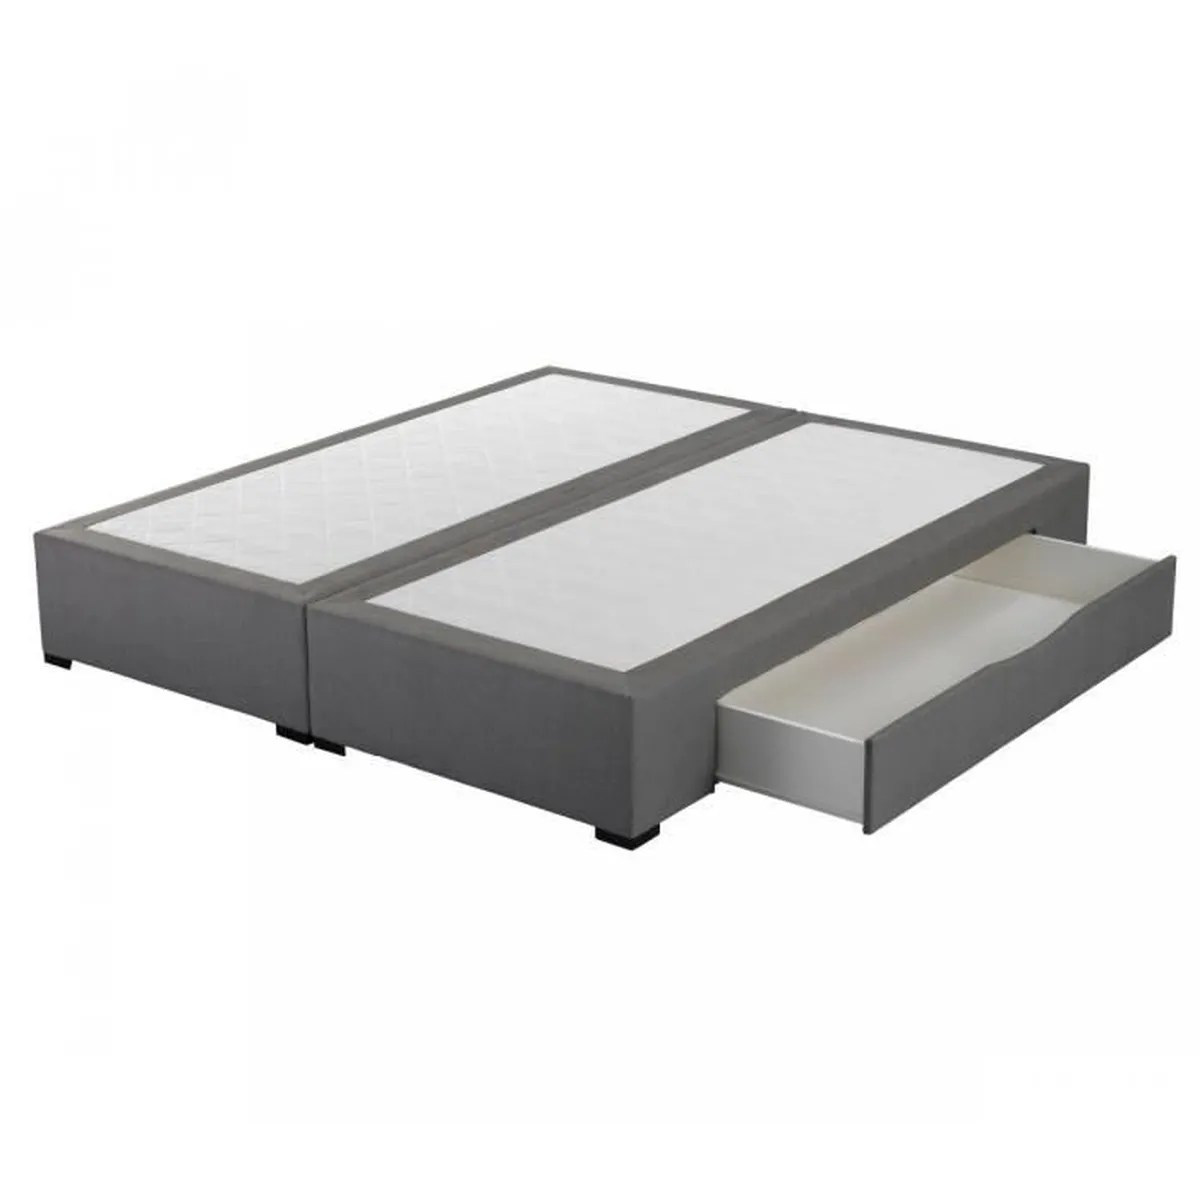 Lit Coffre 2x80x200 Sommier Tiroirs Astoria Gris Crown Bedding 2x80x200 Achat